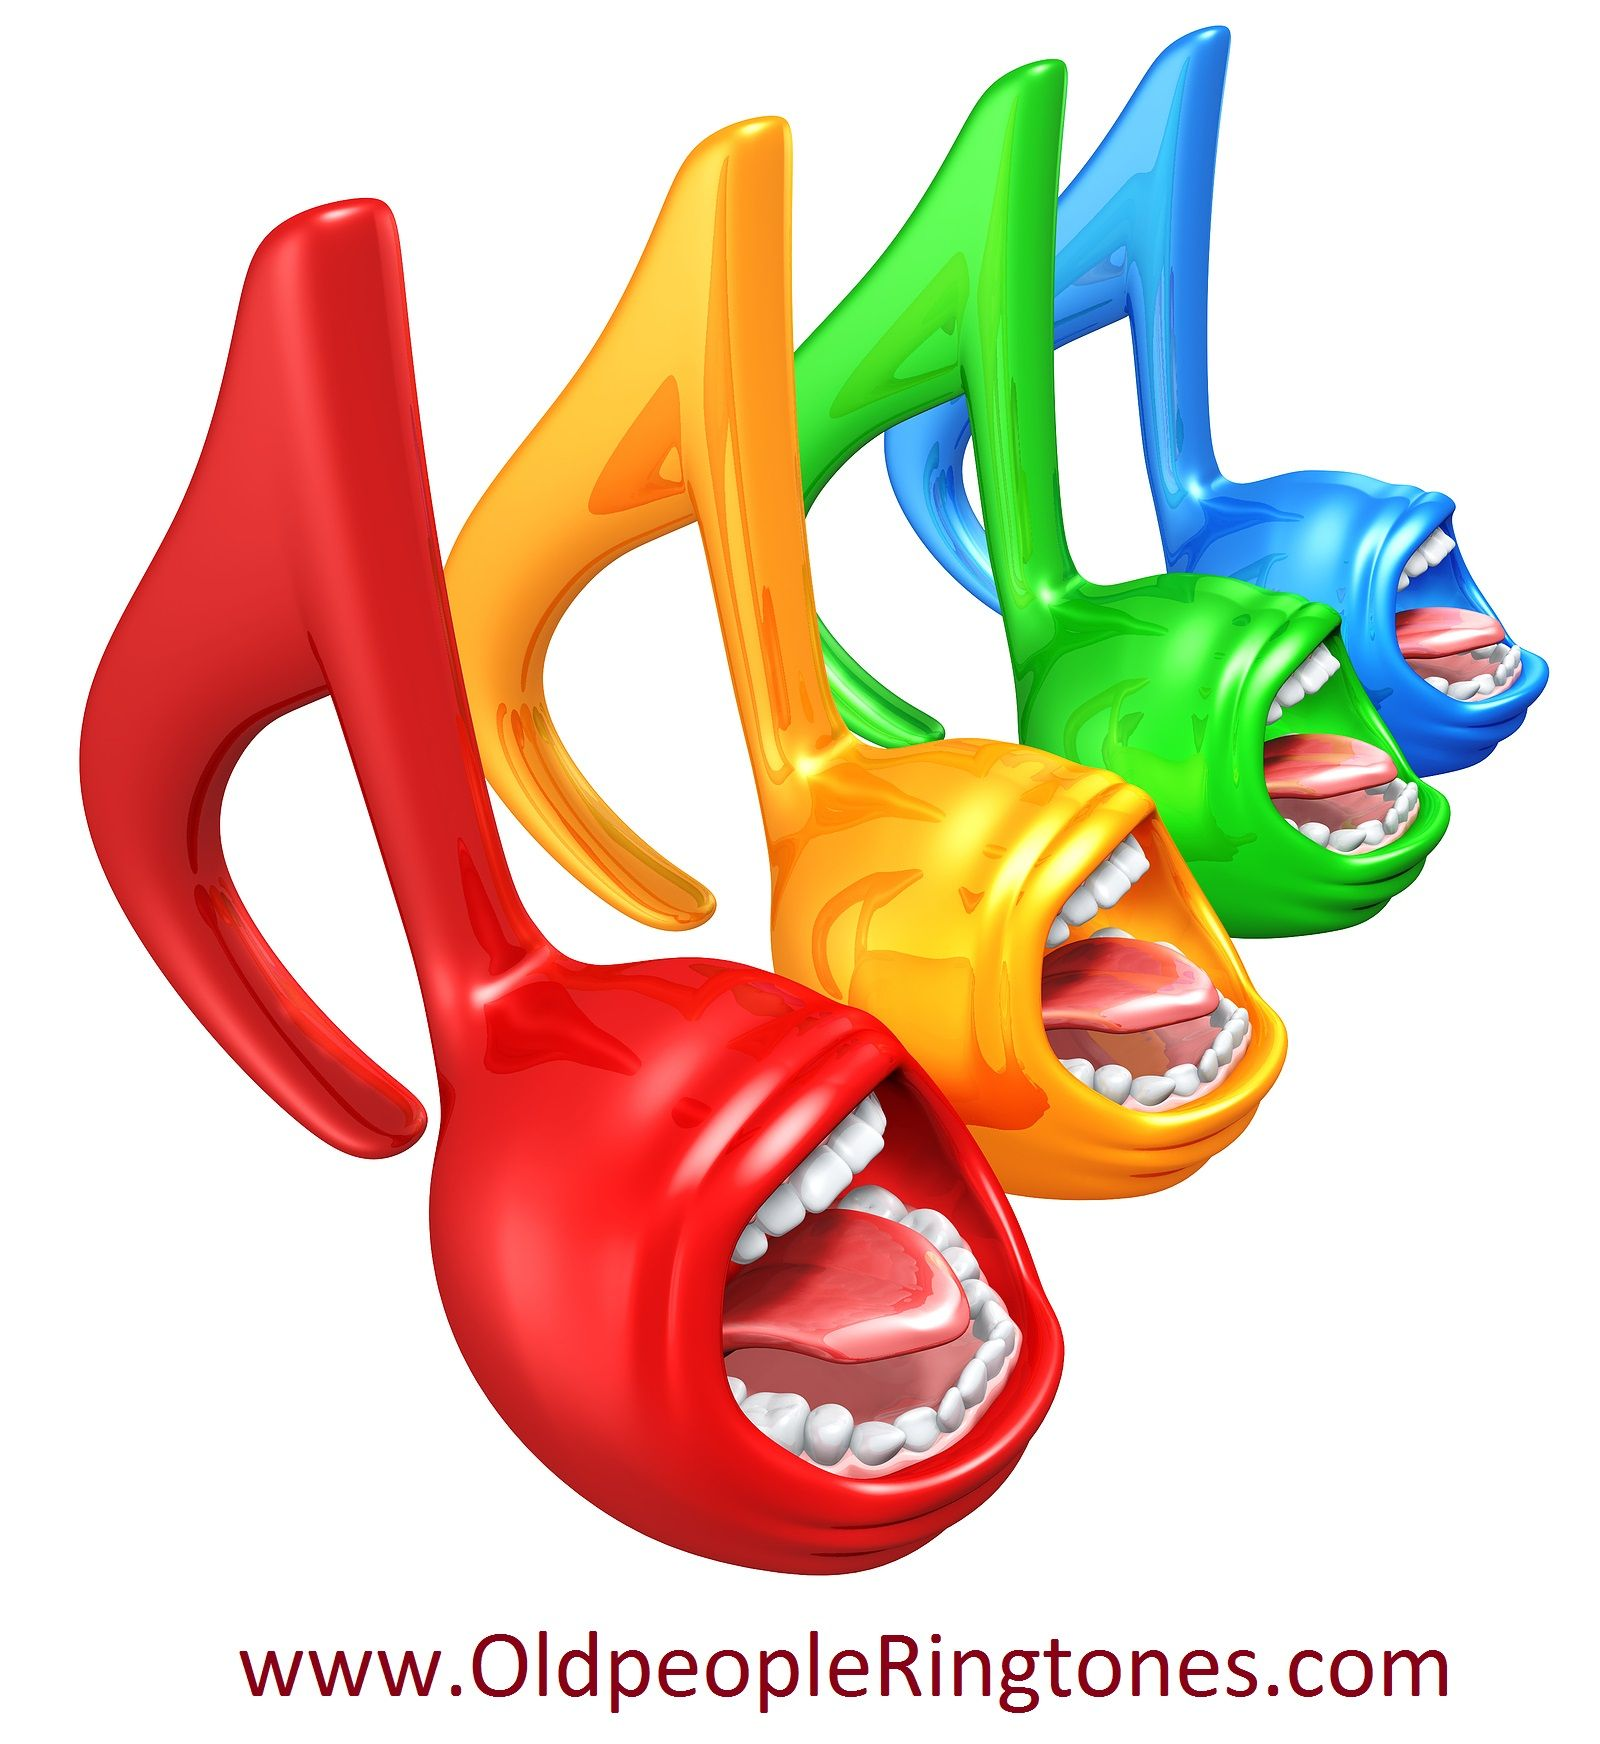 Ringtones for old people Free MP3 ringtones free for